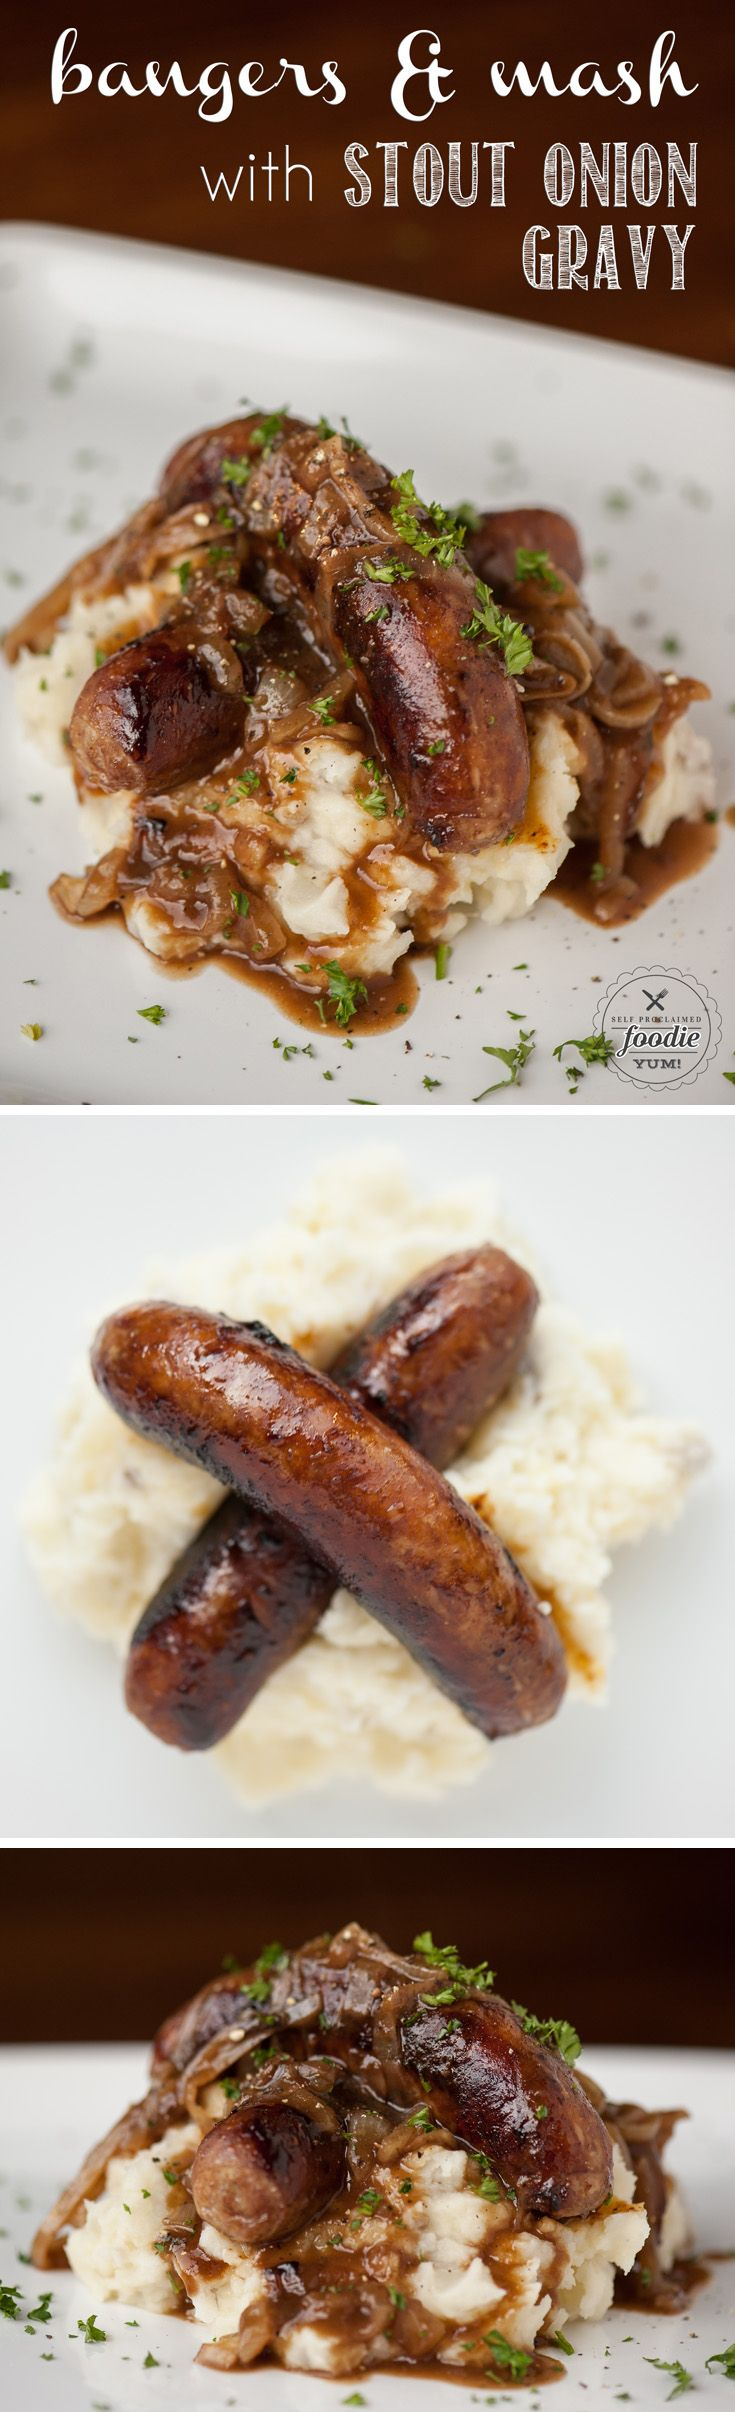 Serve up some delicious Bangers and Mash with Stout Onion Gravy for a quick and easy dinner the entire family will love, especially on St. Patrick's Day.